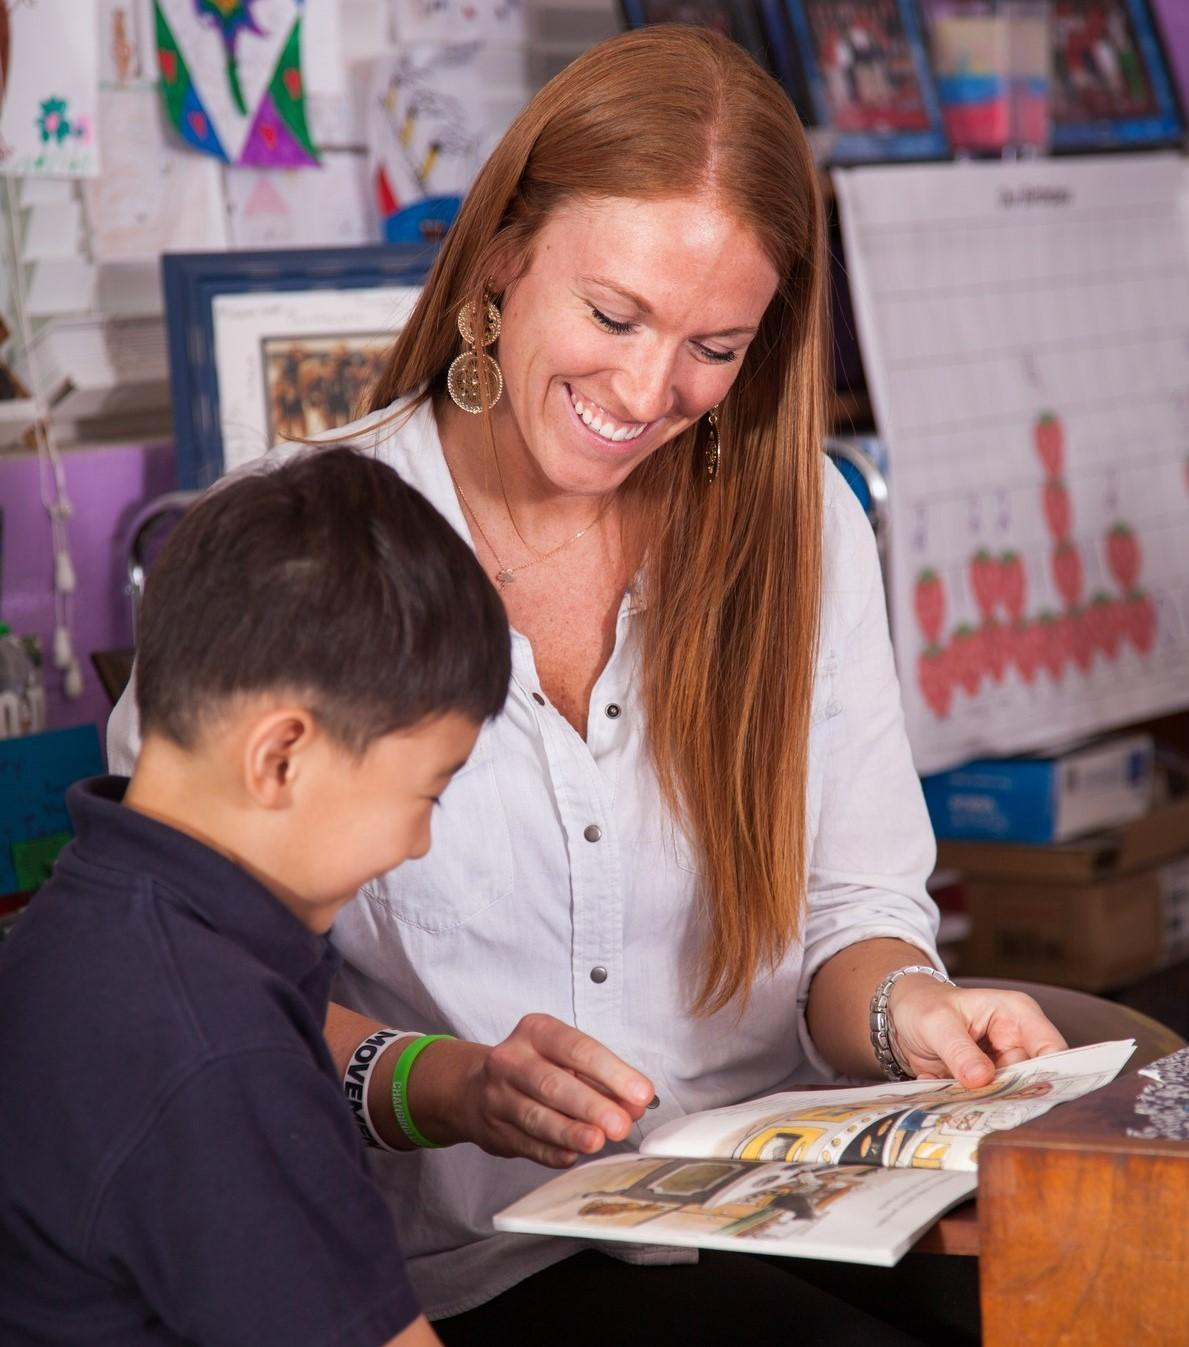 teacher and student smiling as they read a book